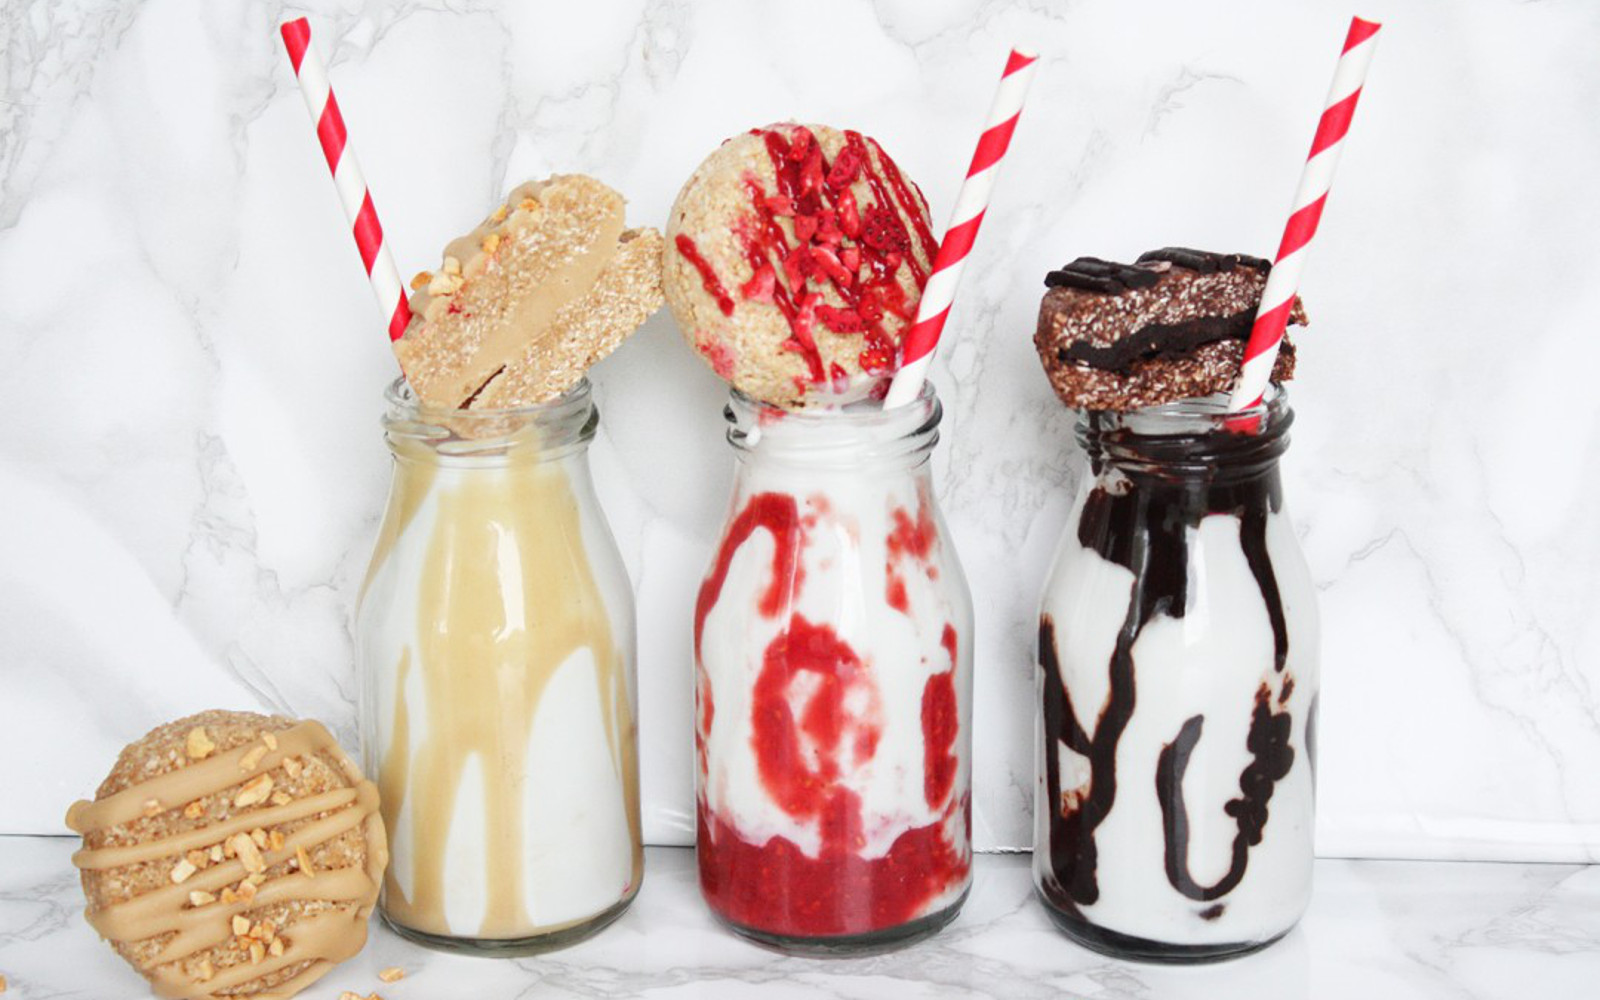 coconut milkshakes and cookies